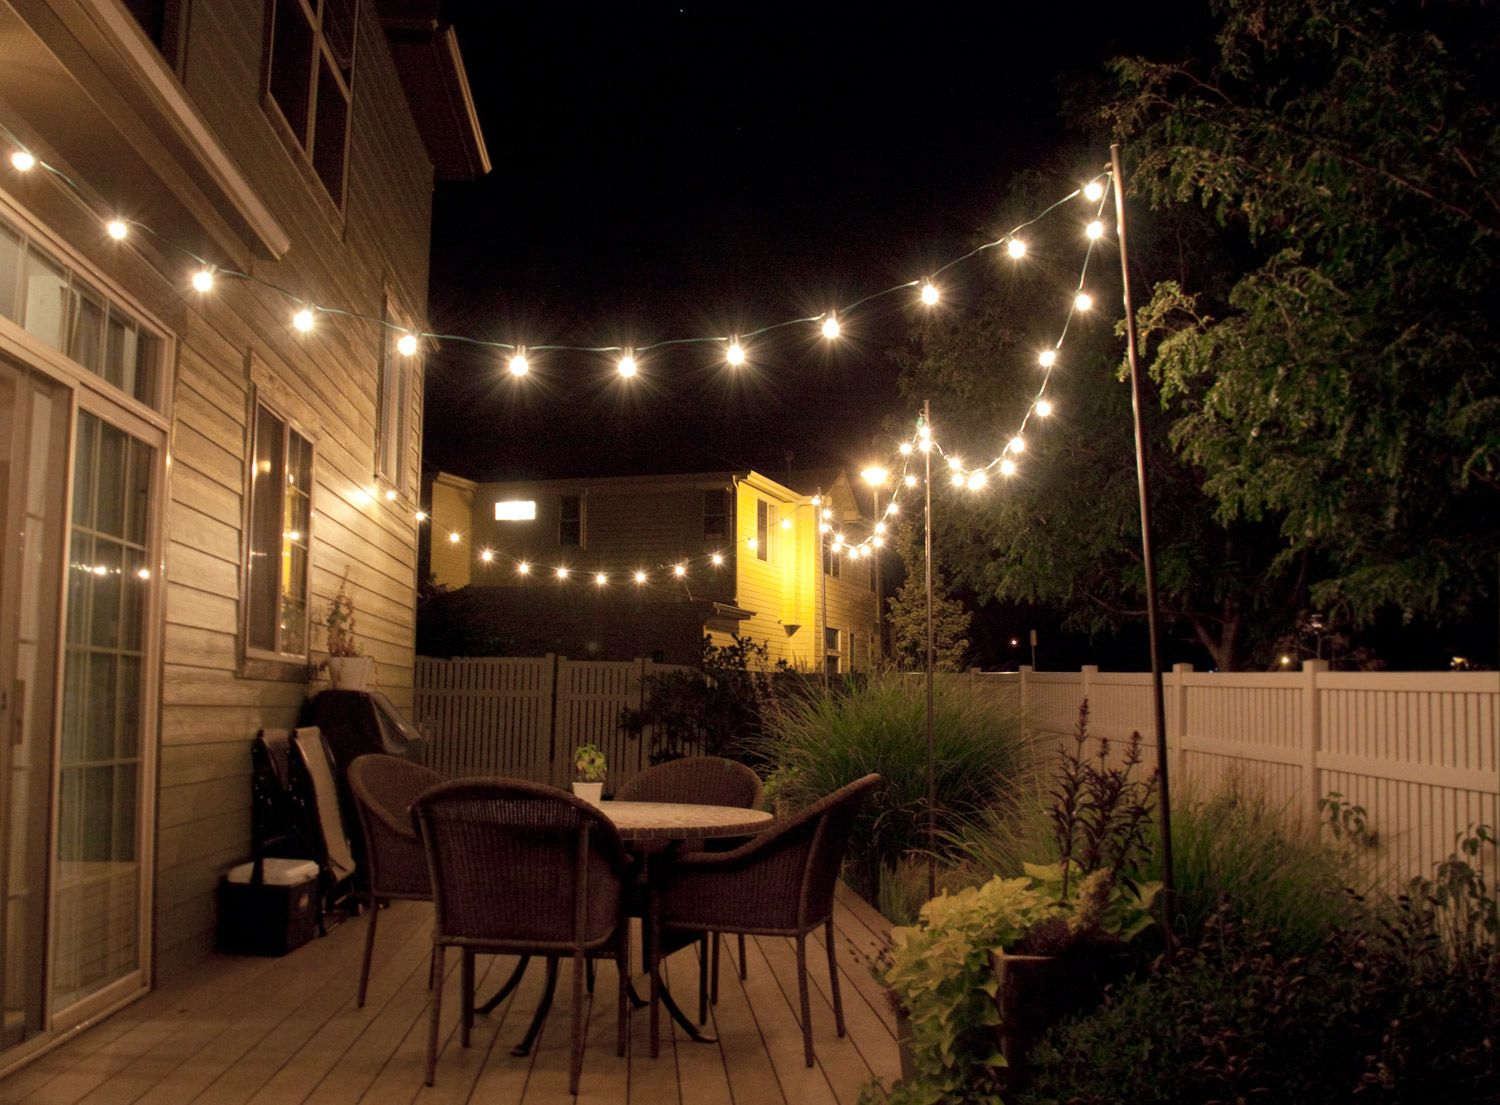 How To Hang String Lights In Backyard Without Trees Captivating How To Make Inexpensive Poles To Hang String Lights On  Café Style Review